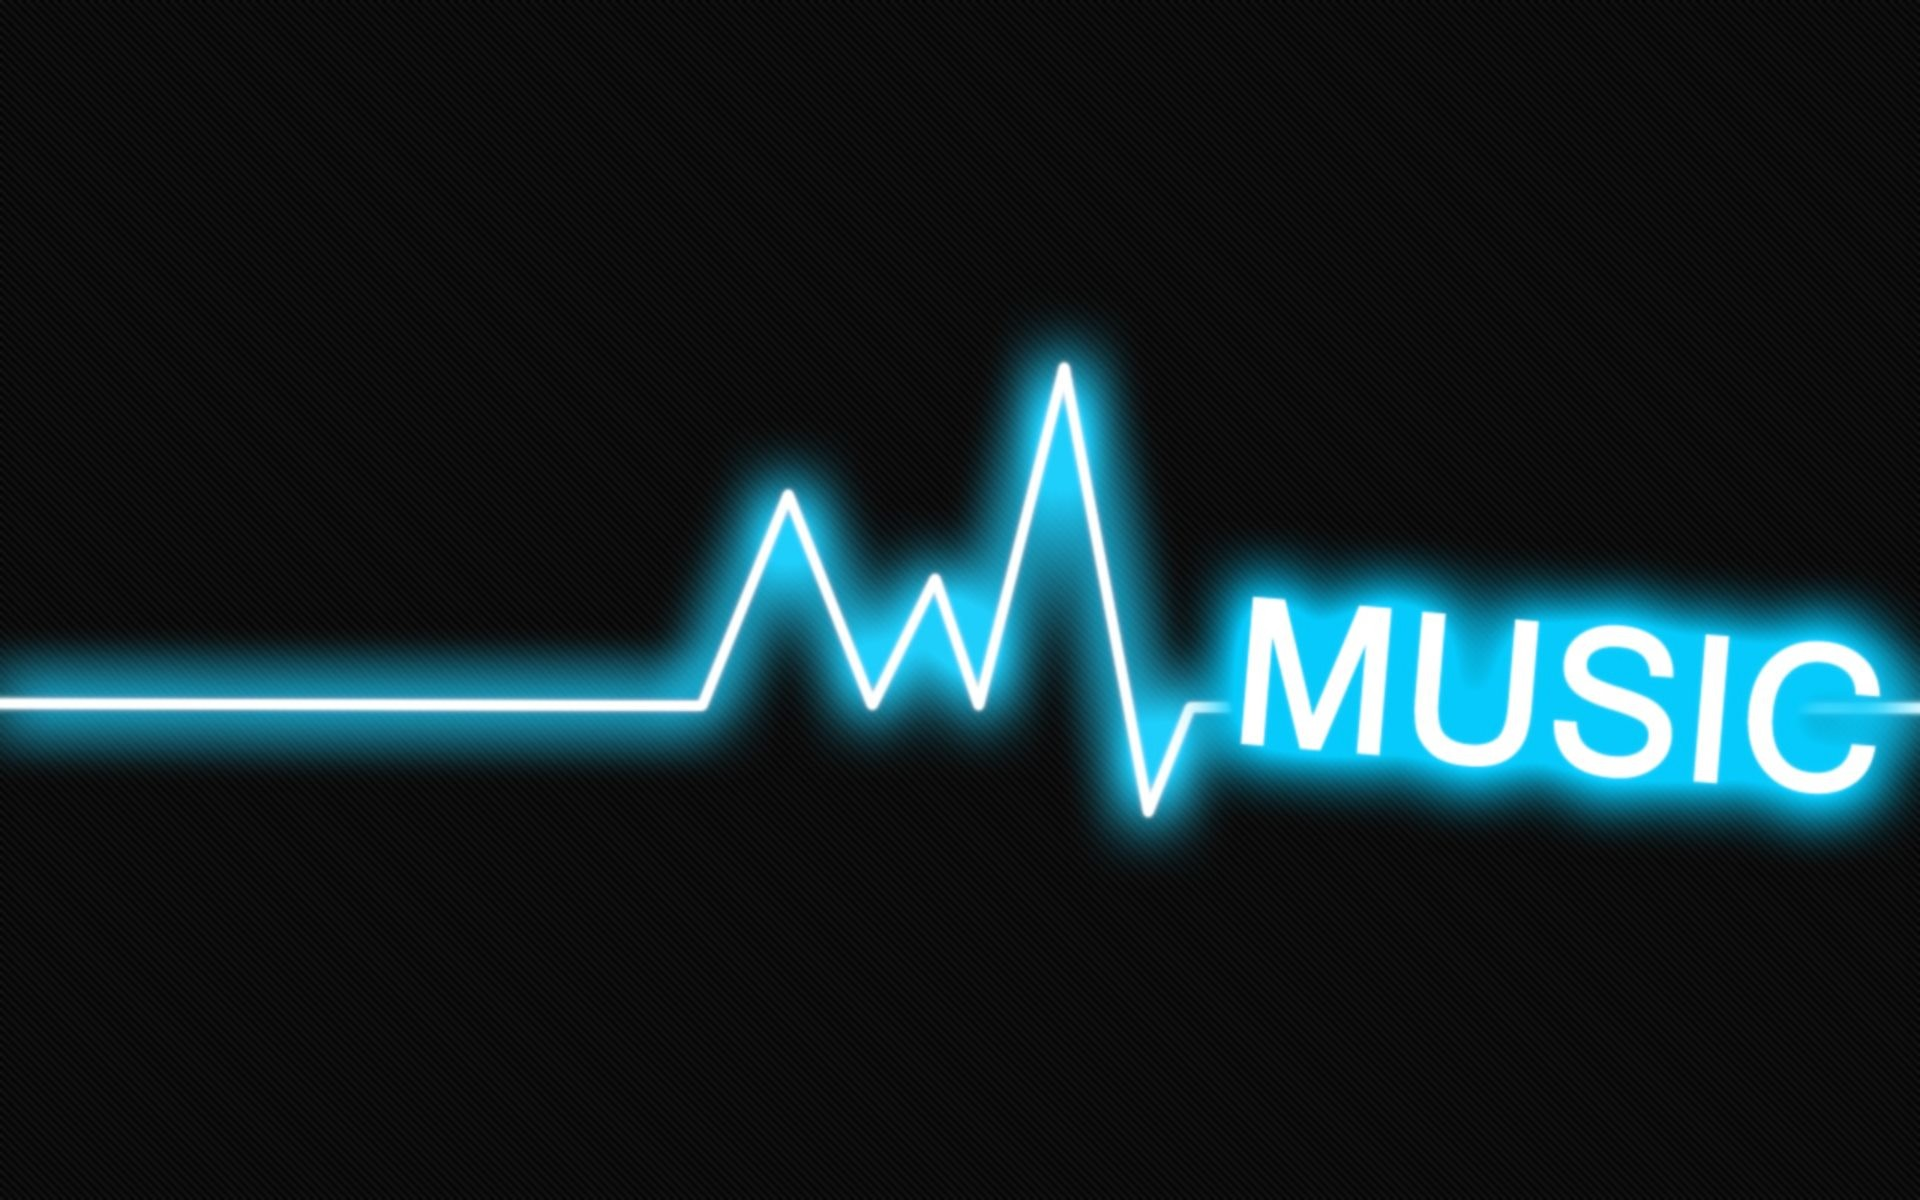 Music Wallpapers HD 1080p